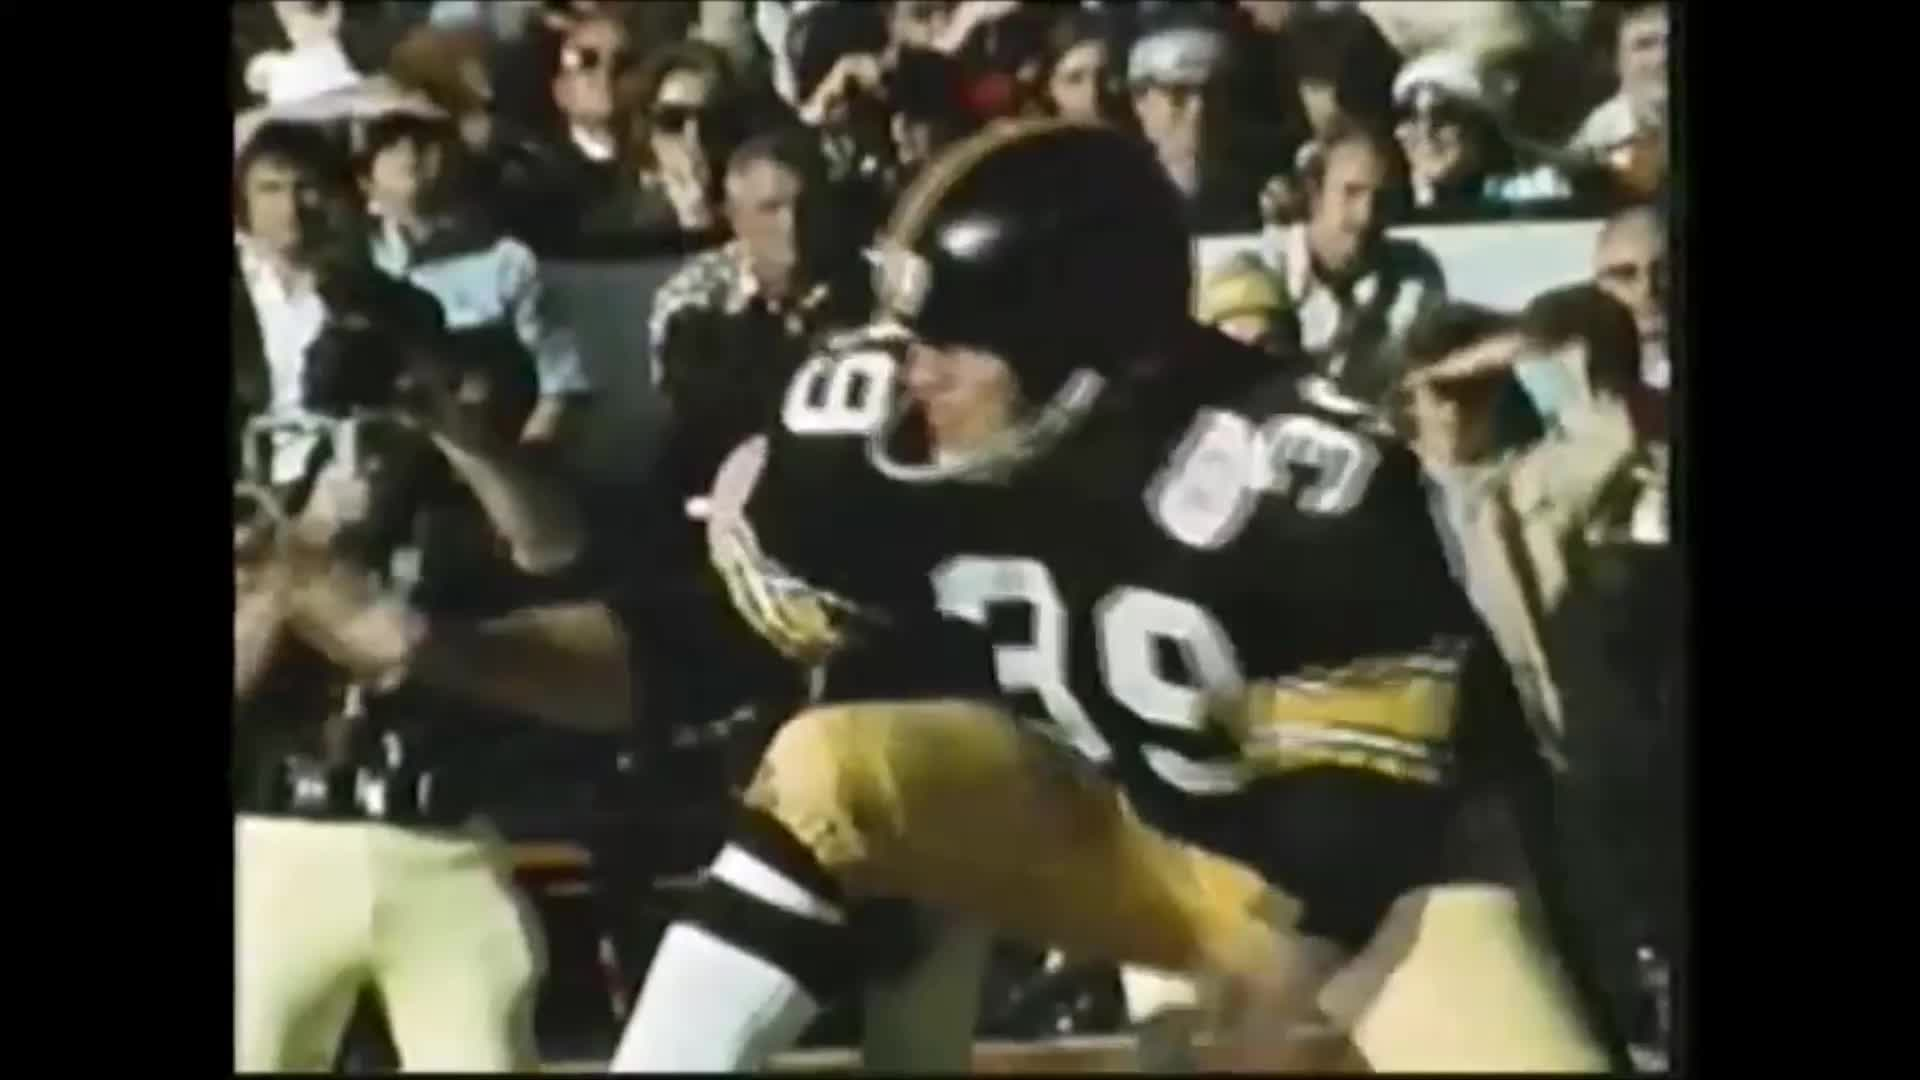 Cowboys' player mocks Steelers' kicker after missing important FG, Jack Lambert is having none of it... GIFs